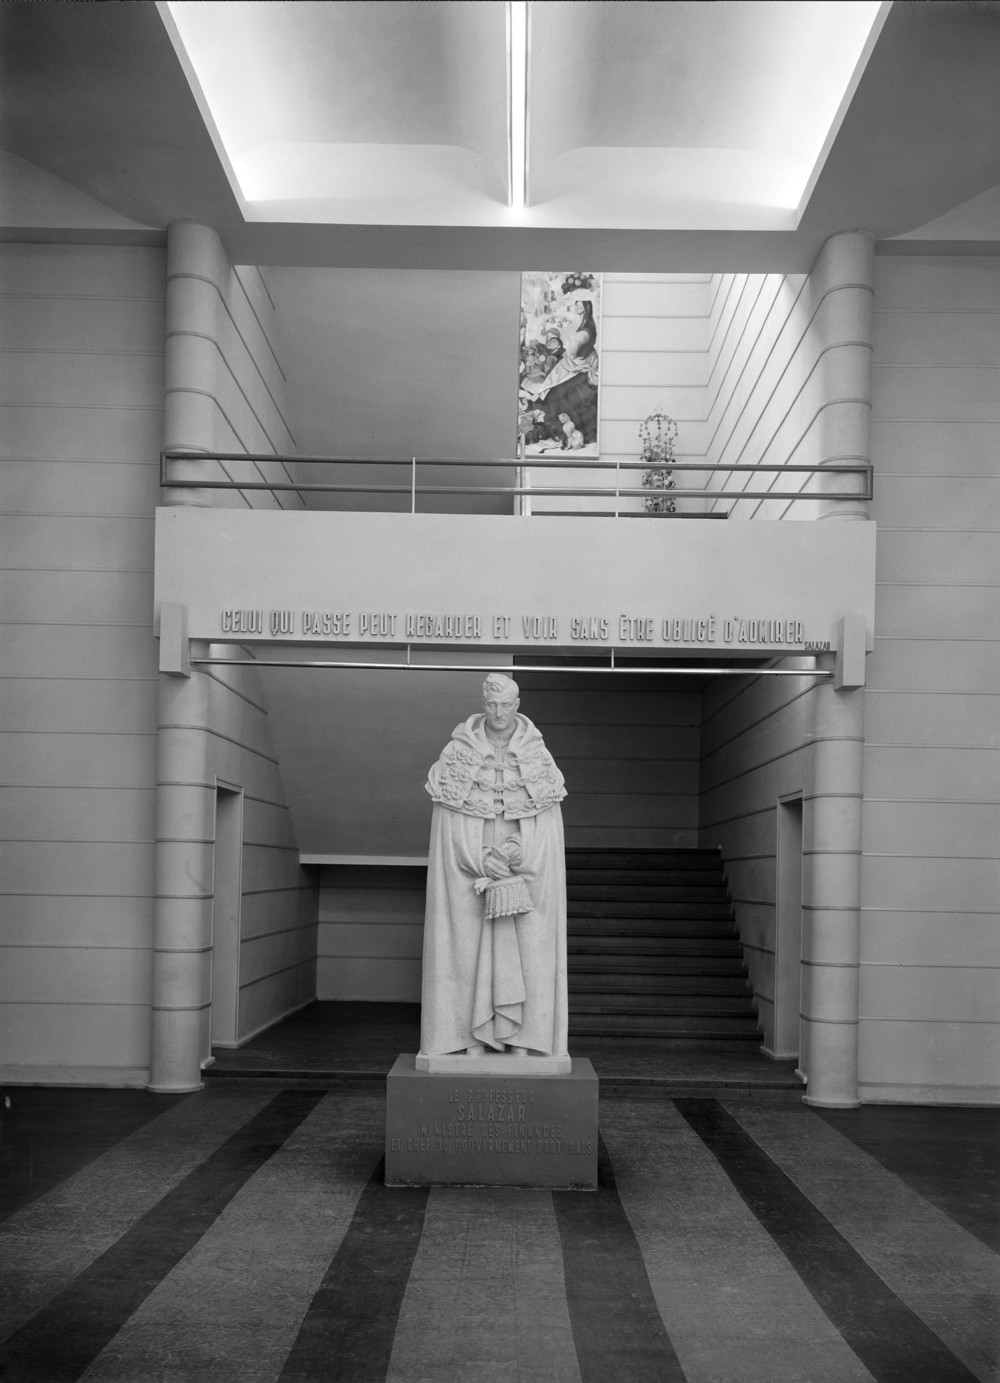 Later, the statue stood at the entrance of the Liceu Salazar, Mozambique's first high school, but was recently abandoned to a corner of the Mozambique national library's courtyard.  Photo: Mário Novais, 1937, Paris  Biblioteca de Arte da Fundação Calouste Gulbenkian [CFT003_103078]